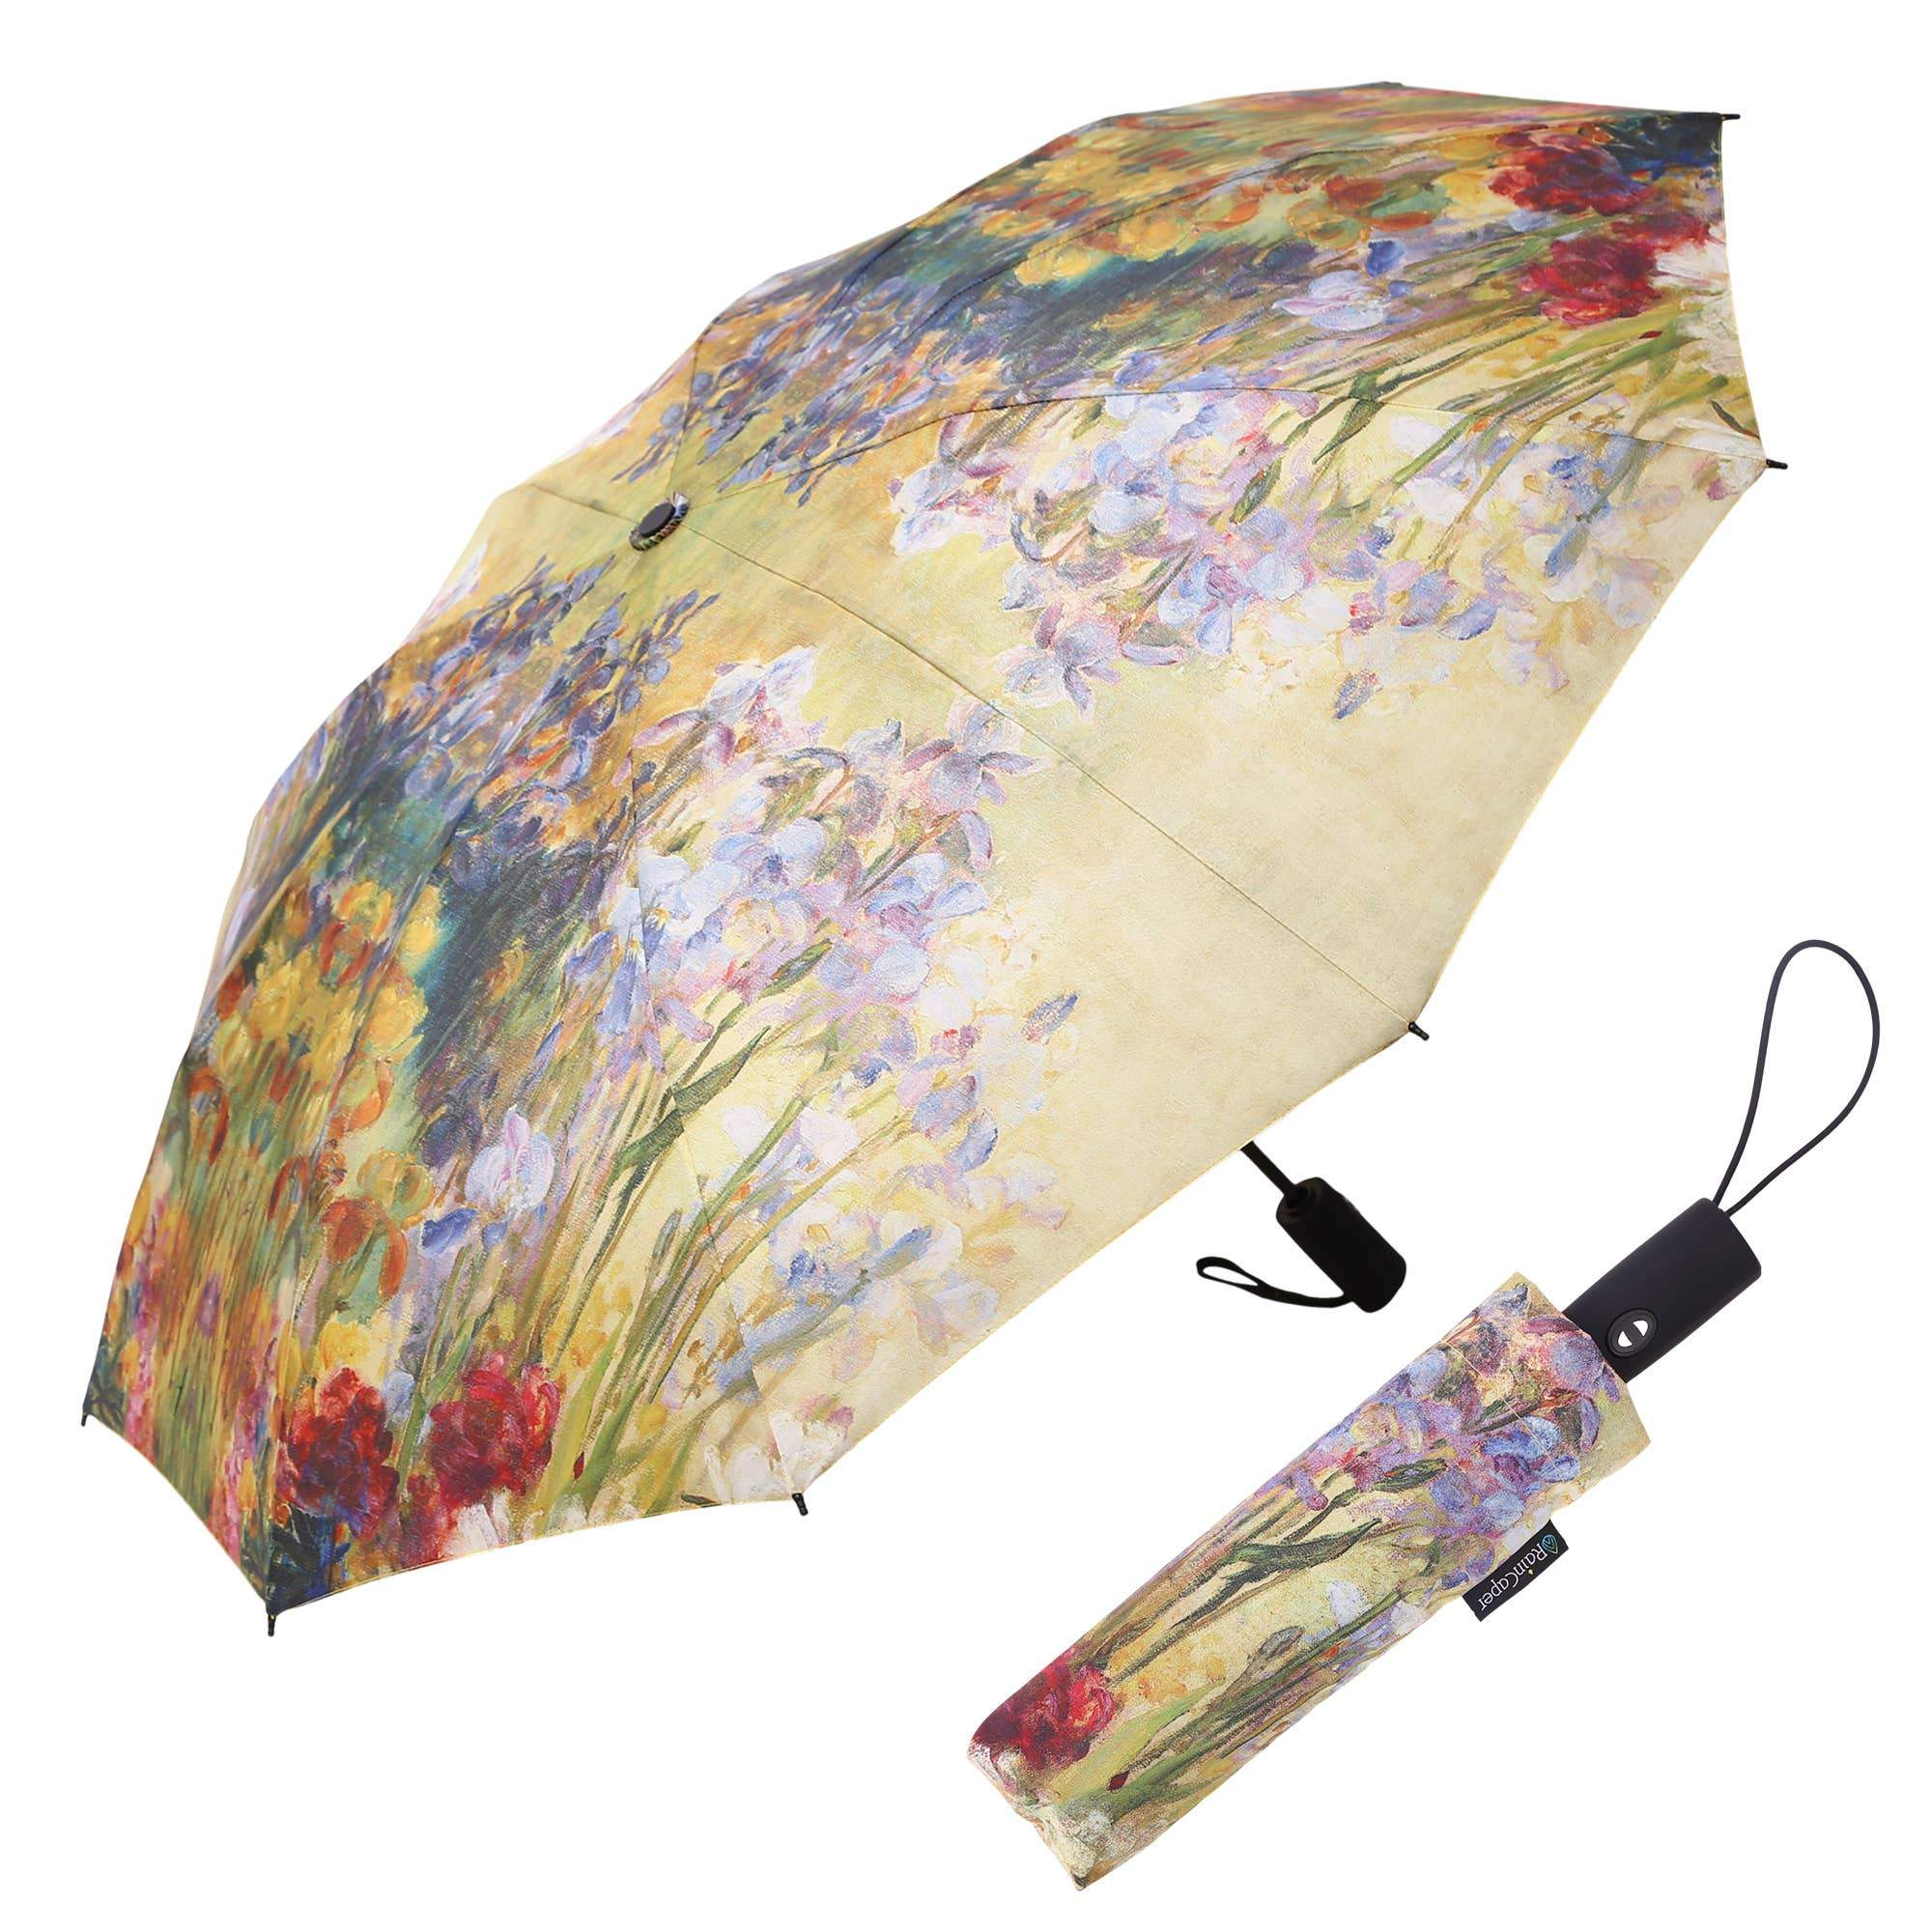 RainCaper - RainCaper Tiffany Peonies & Iris Folding Travel Umbrella-Raincaper-RainCaper-default-Lizzy's Pink Boutique